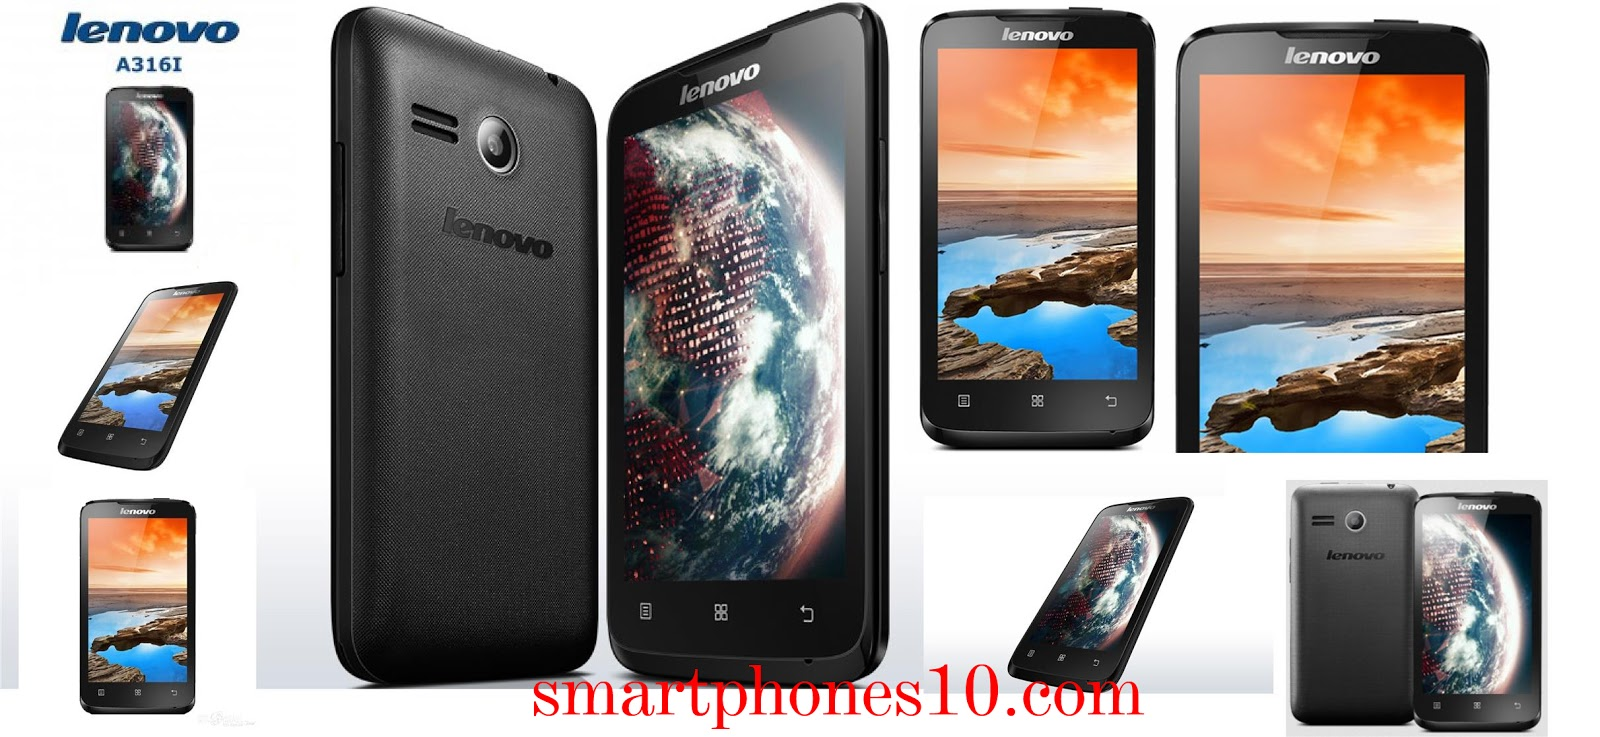 Cara Flash atau Mengatasi Bootloop Lenovo A316I Via SP Flashtool